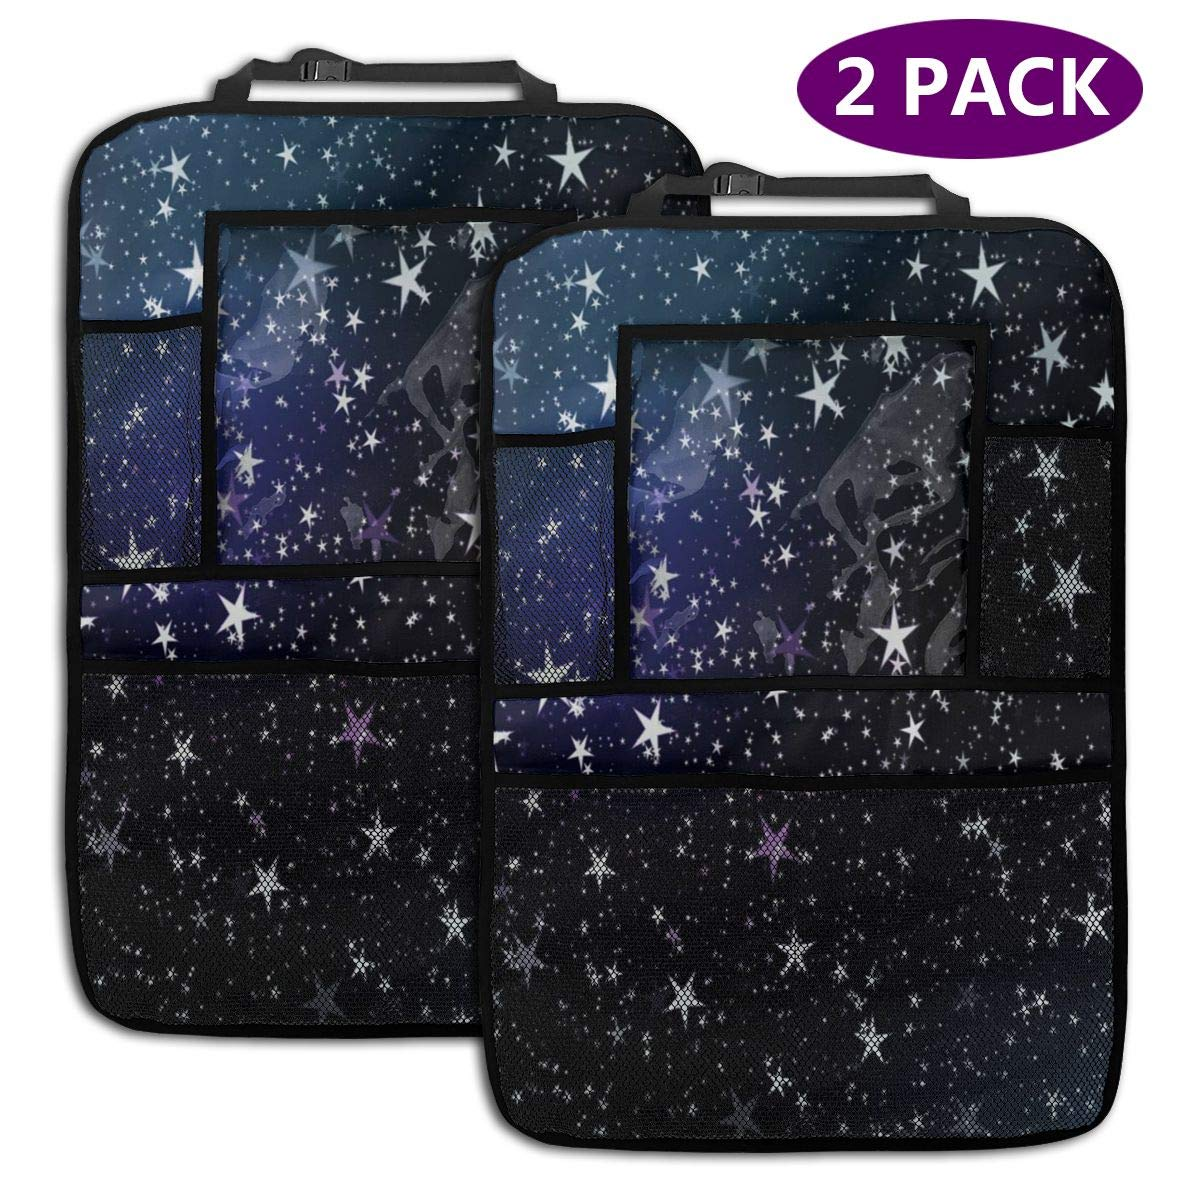 QF6FEICHAN Blue Sky and Star Car Seat Back Protectors with Storage Pockets Kick Mats Accessories for Kids and Toddlers by QF6FEICHAN